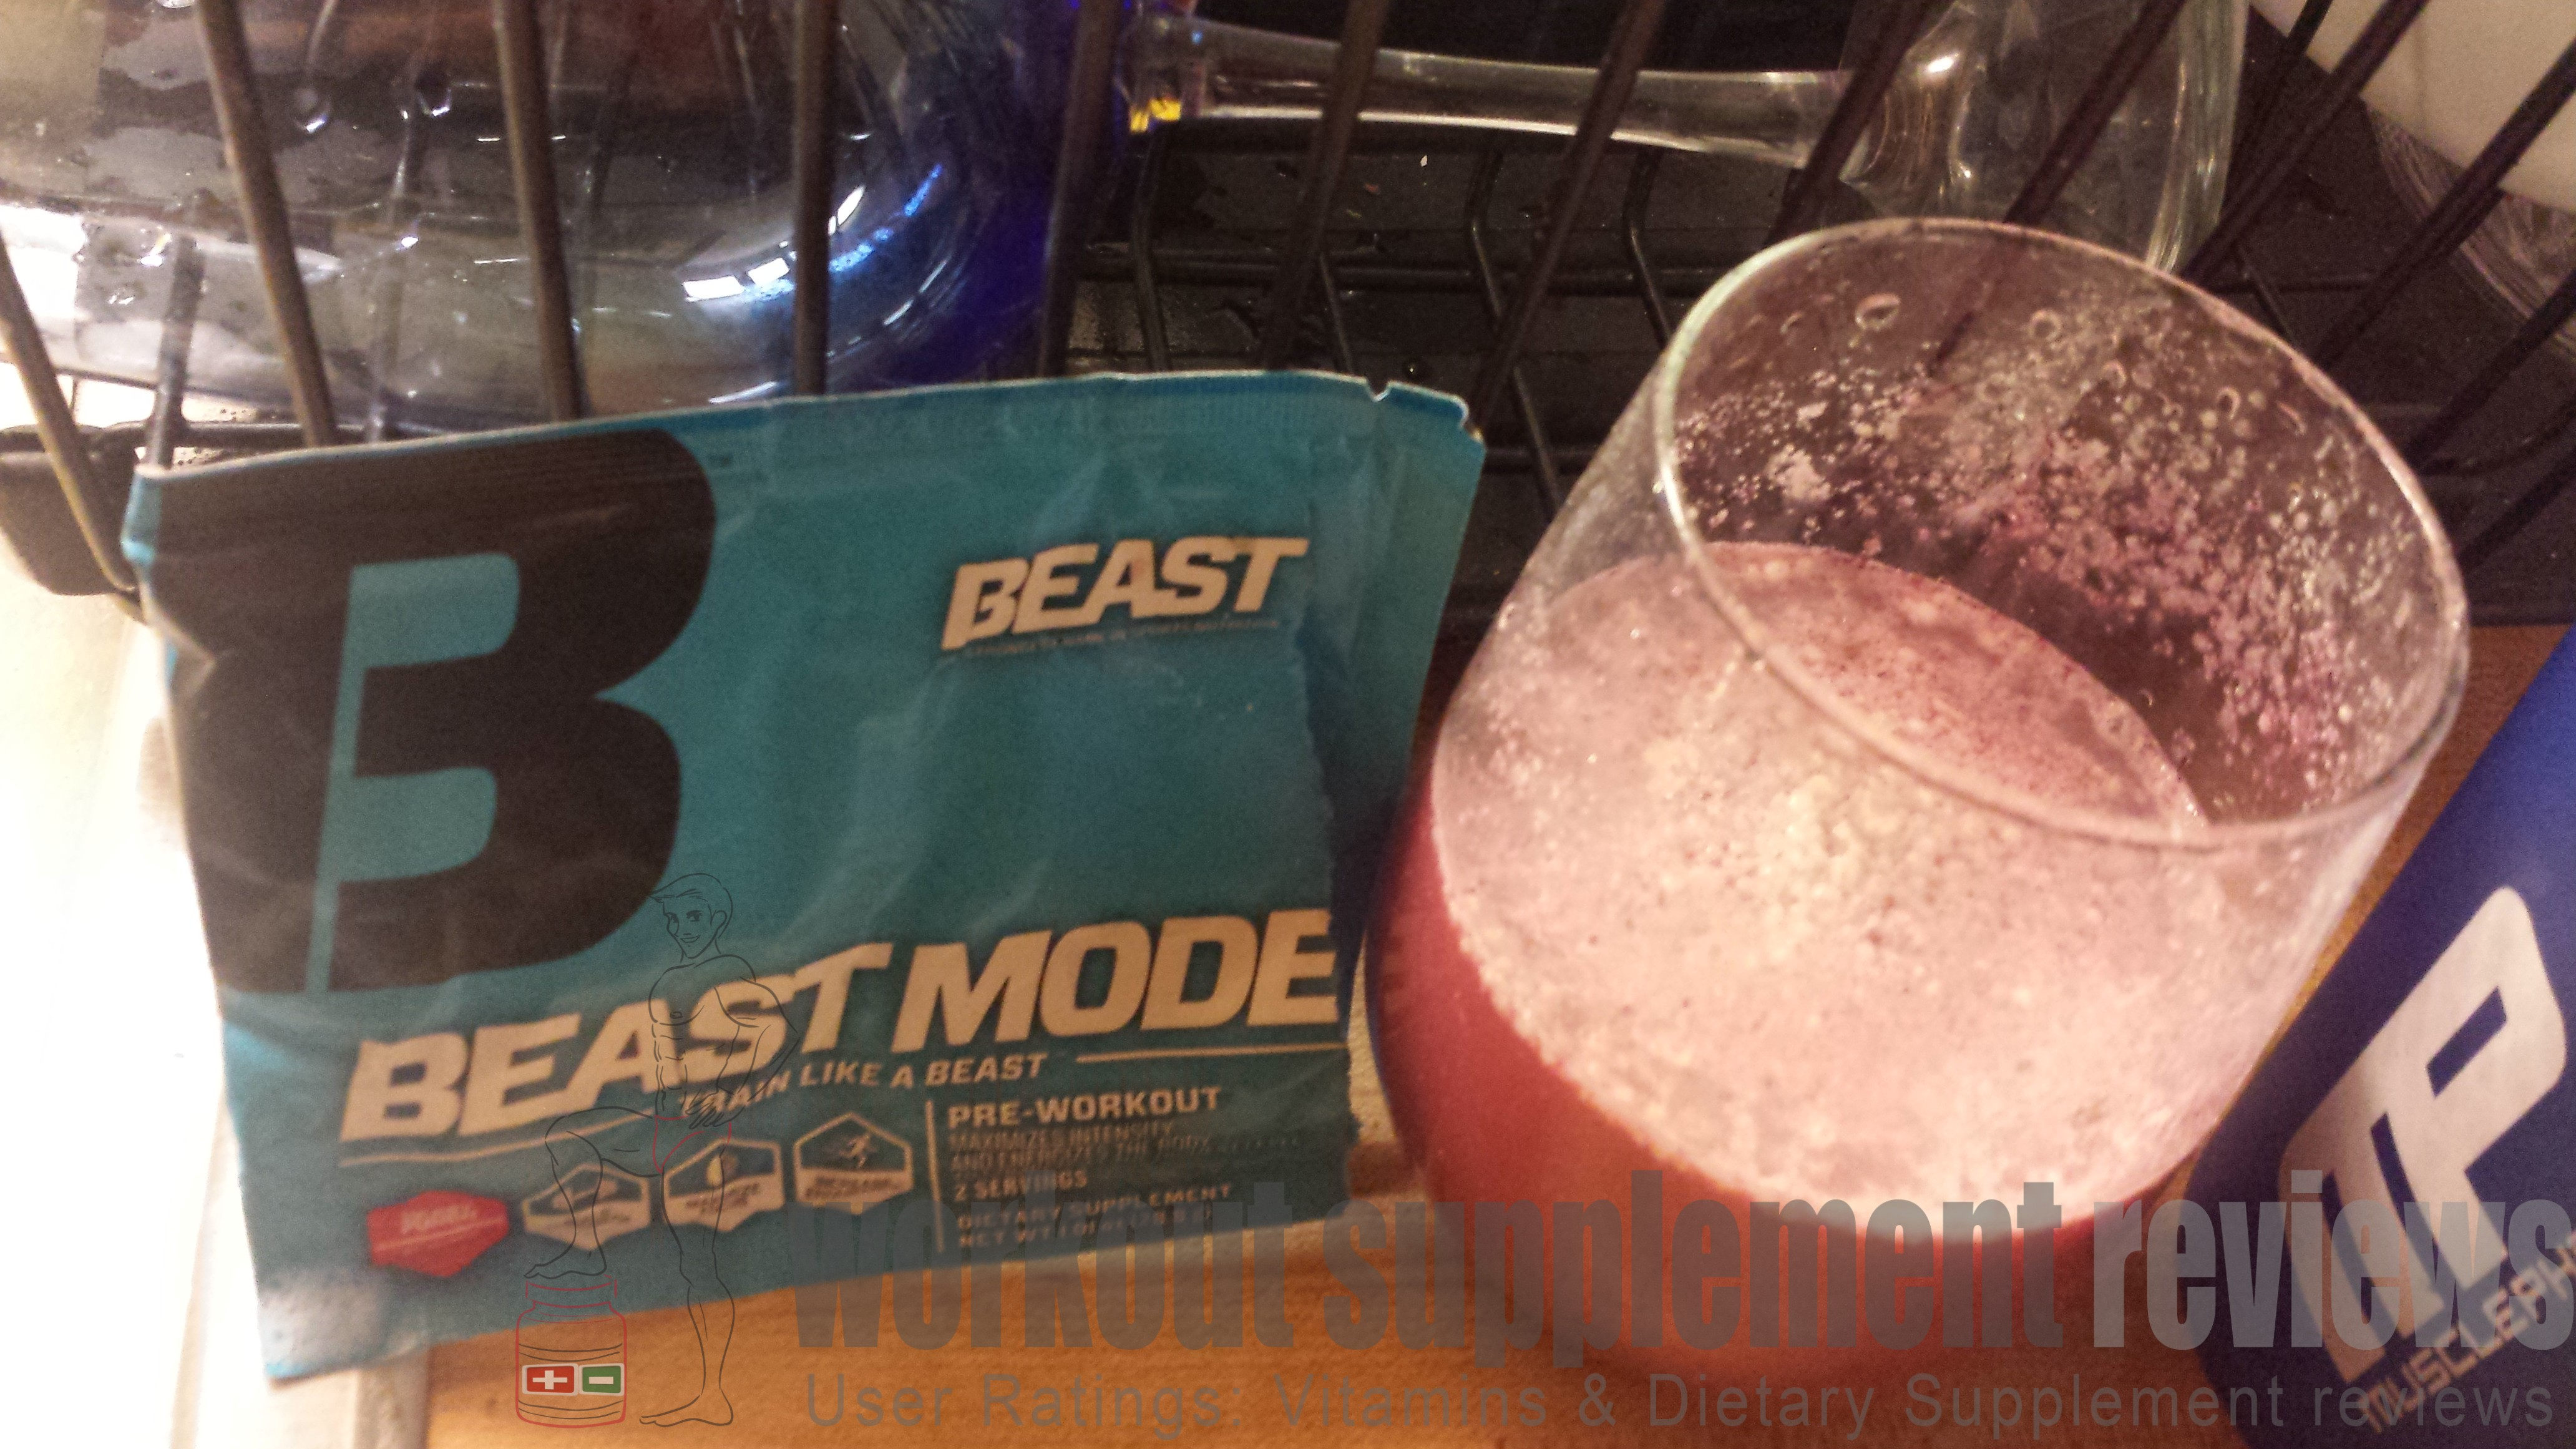 20170128 184058 184054 184049 184013 1 Person Likes This Beast Nutrition Pre Workout